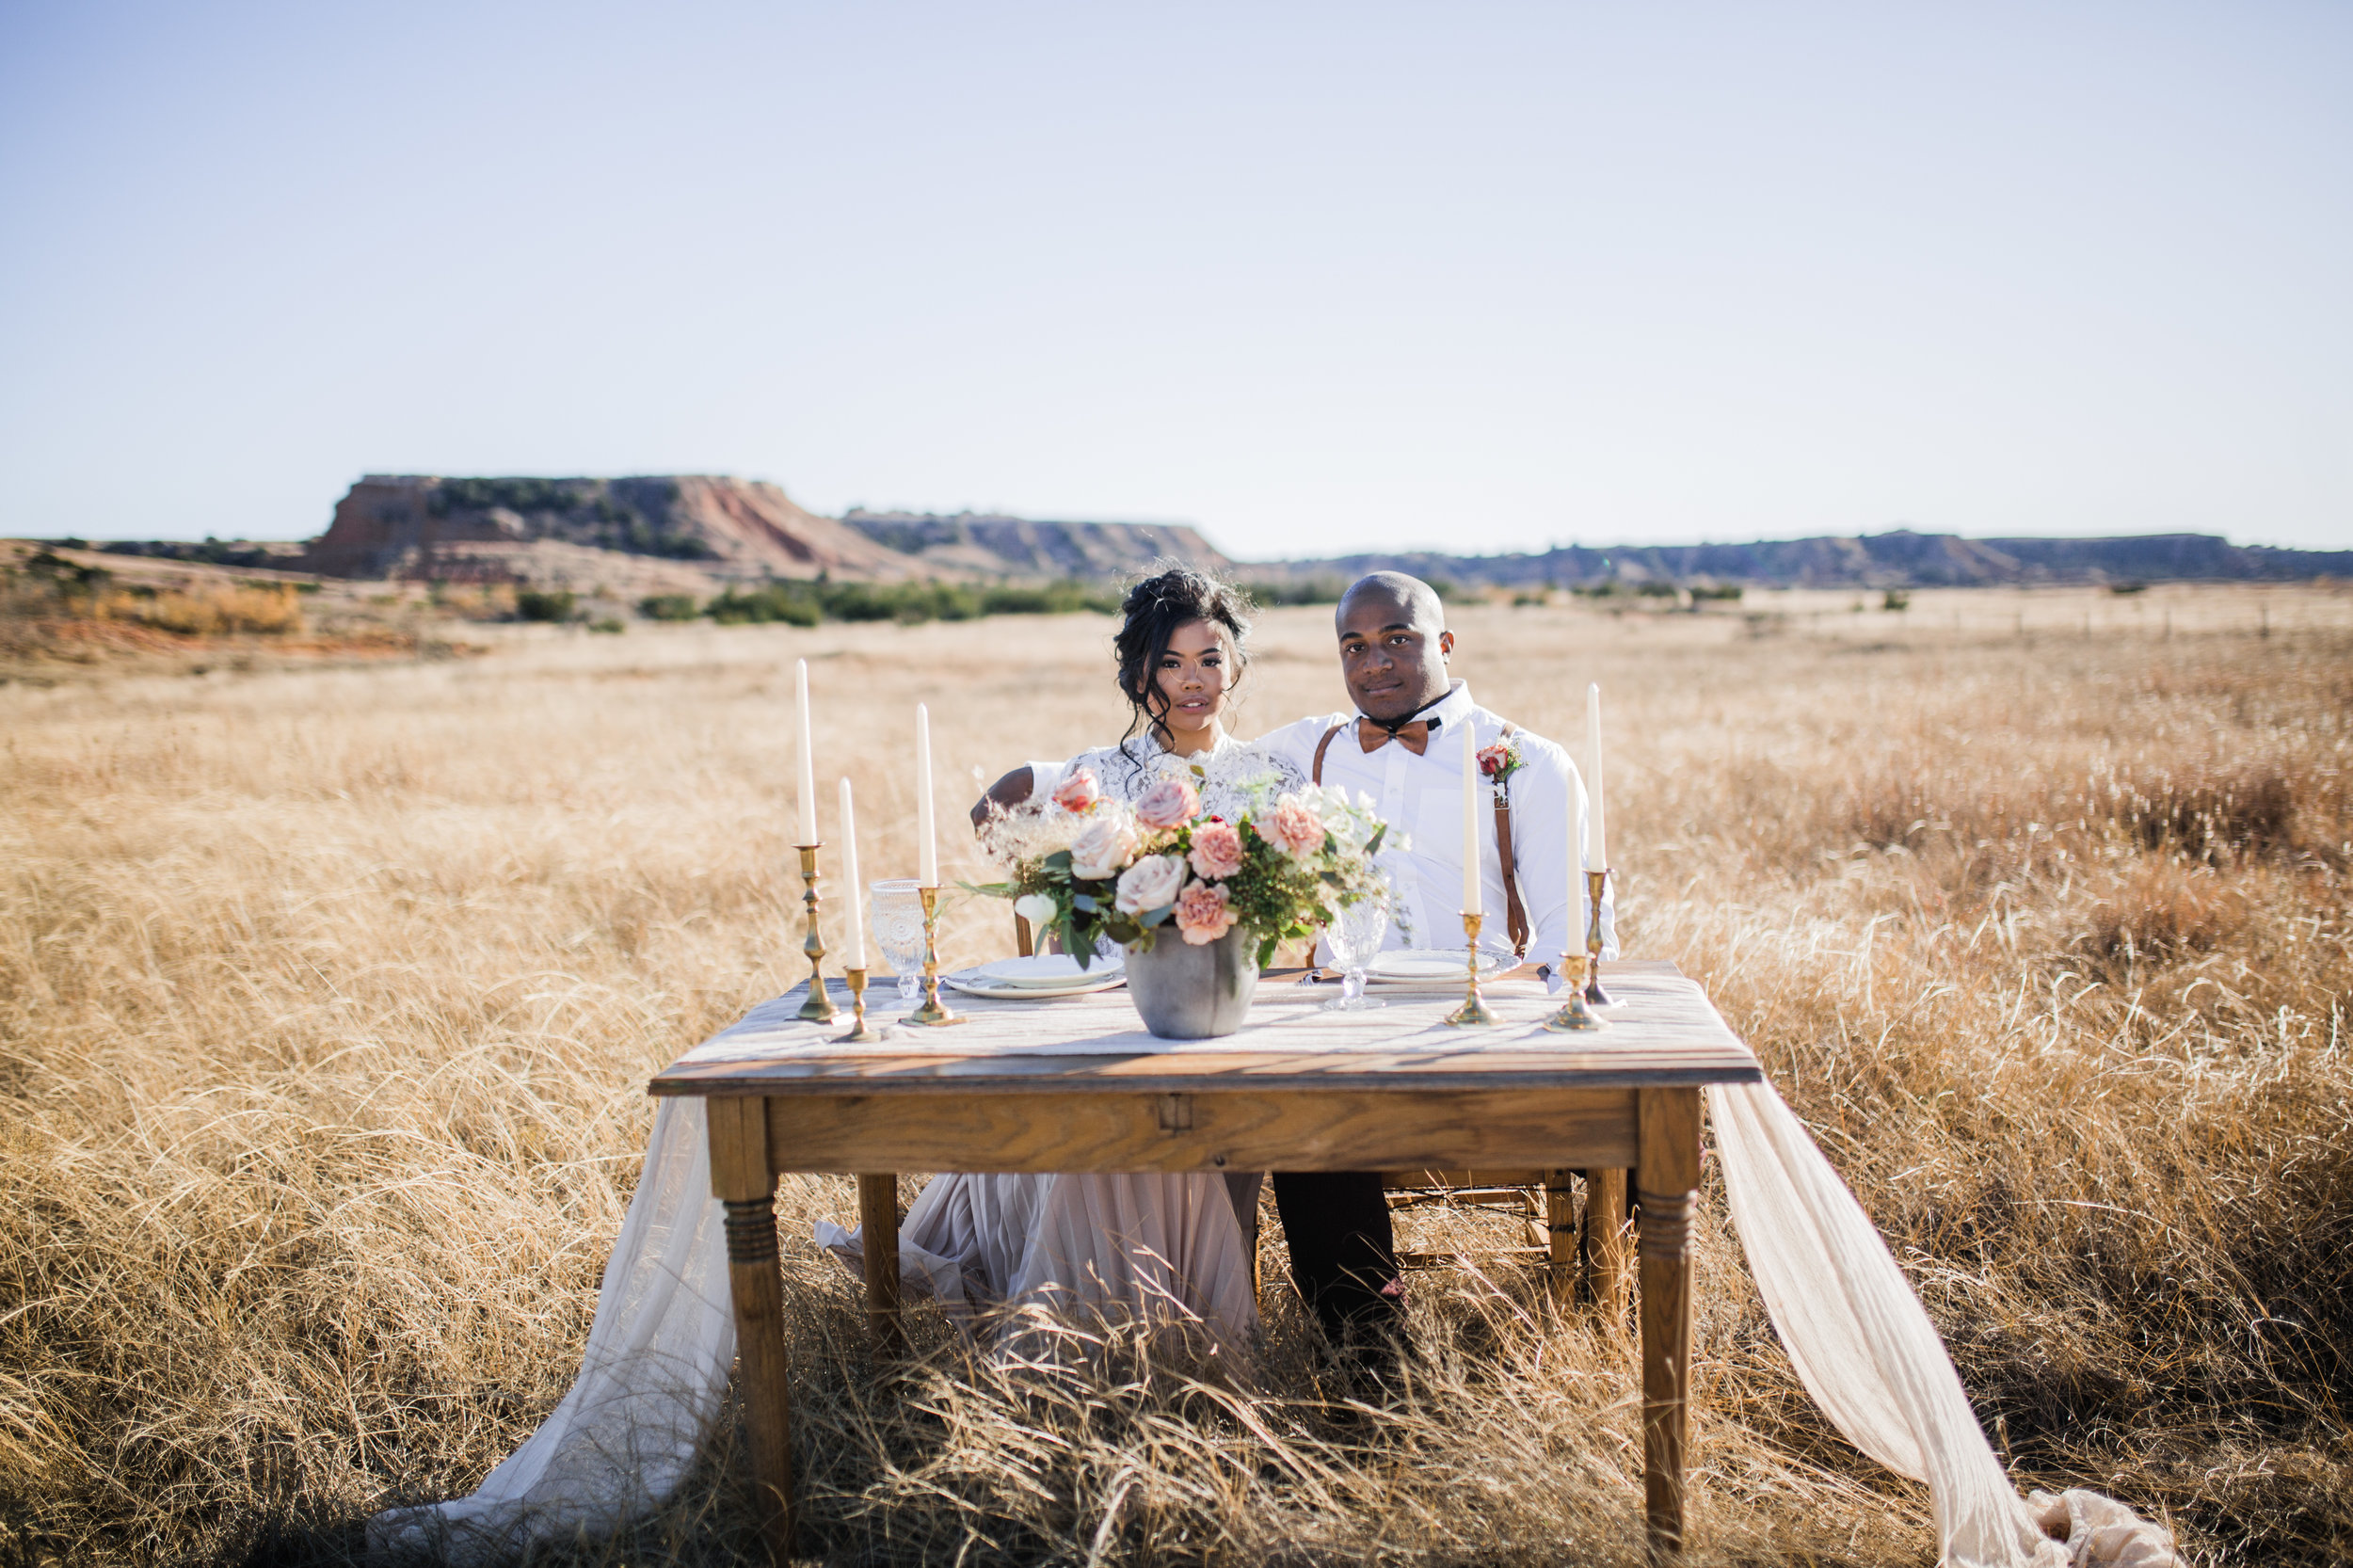 gloss-mountain-wedding-la-vintage-ok-rentals-06.jpg